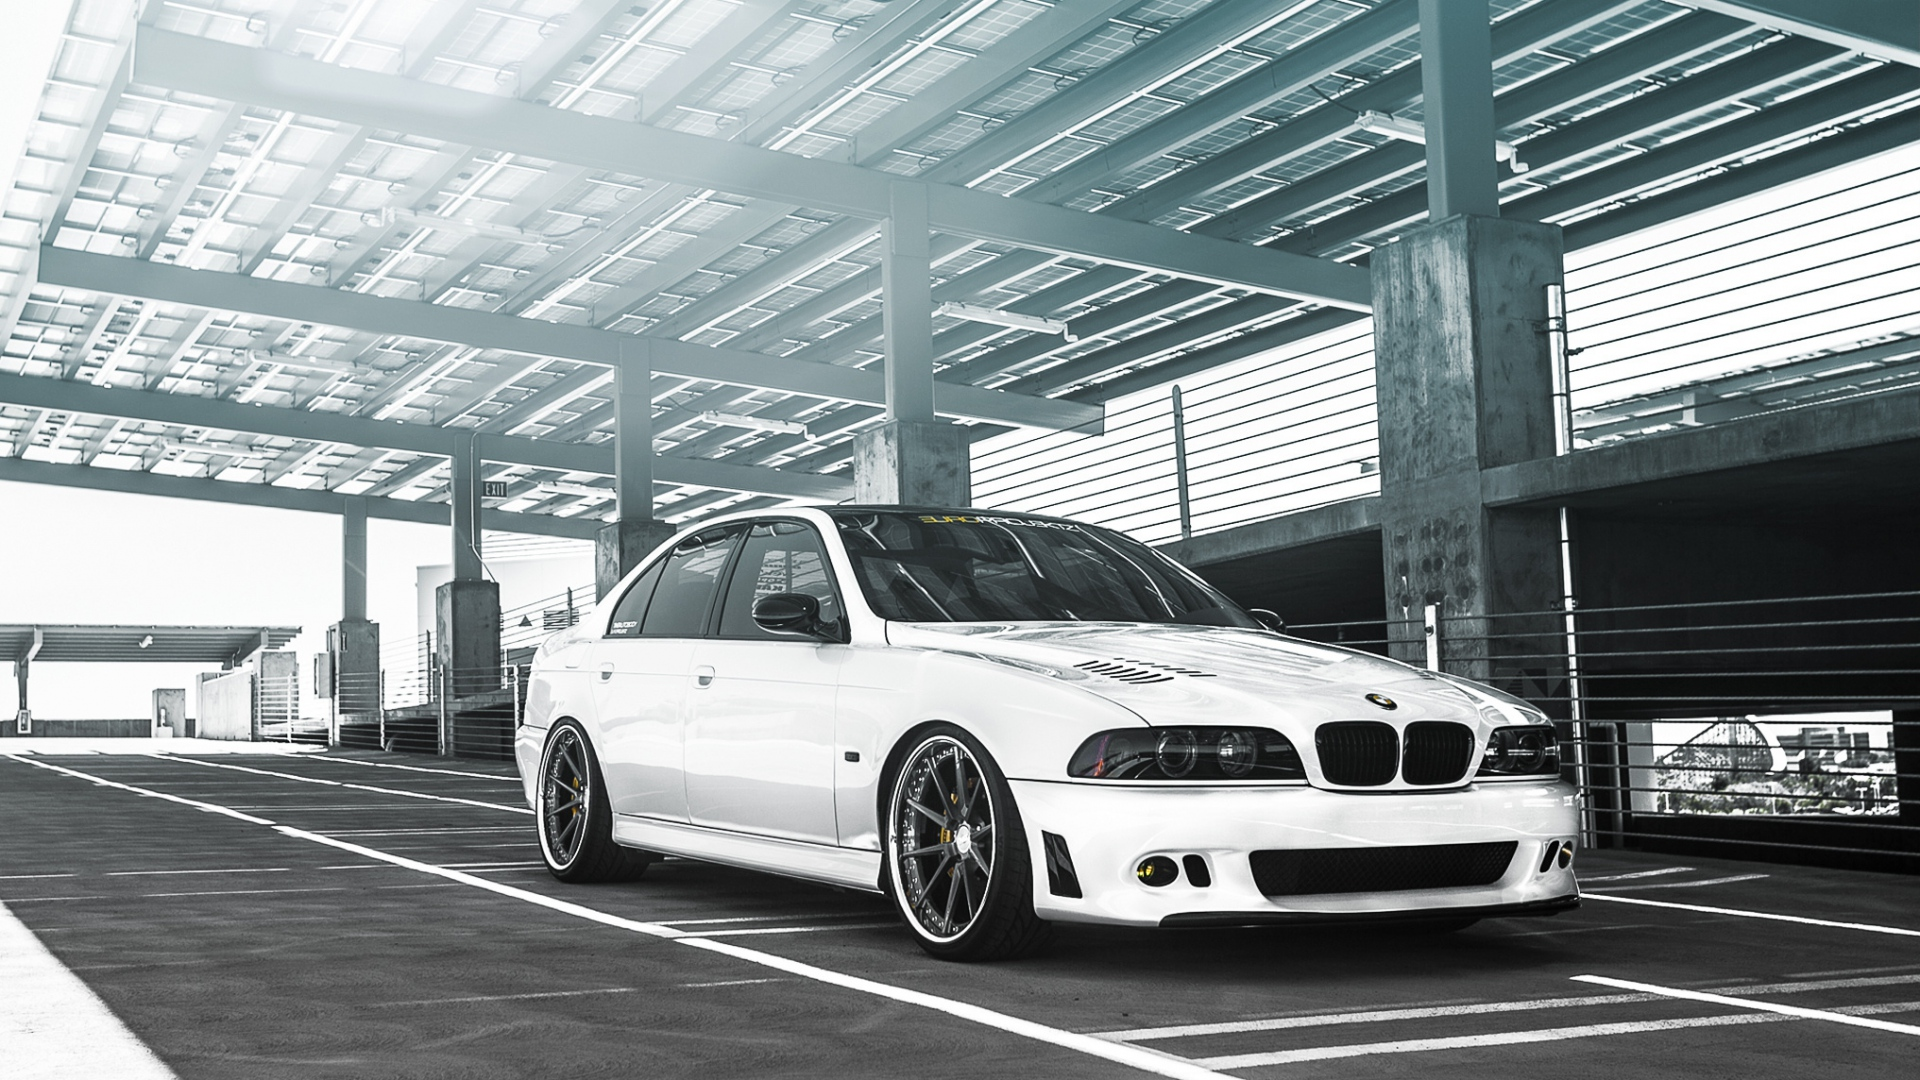 Bmw-m-Tuning-White-1920x1080-Need-iPhone-S-Plus-Background-for-IPhoneSPlus-Fo-wallpaper-wpc5802960